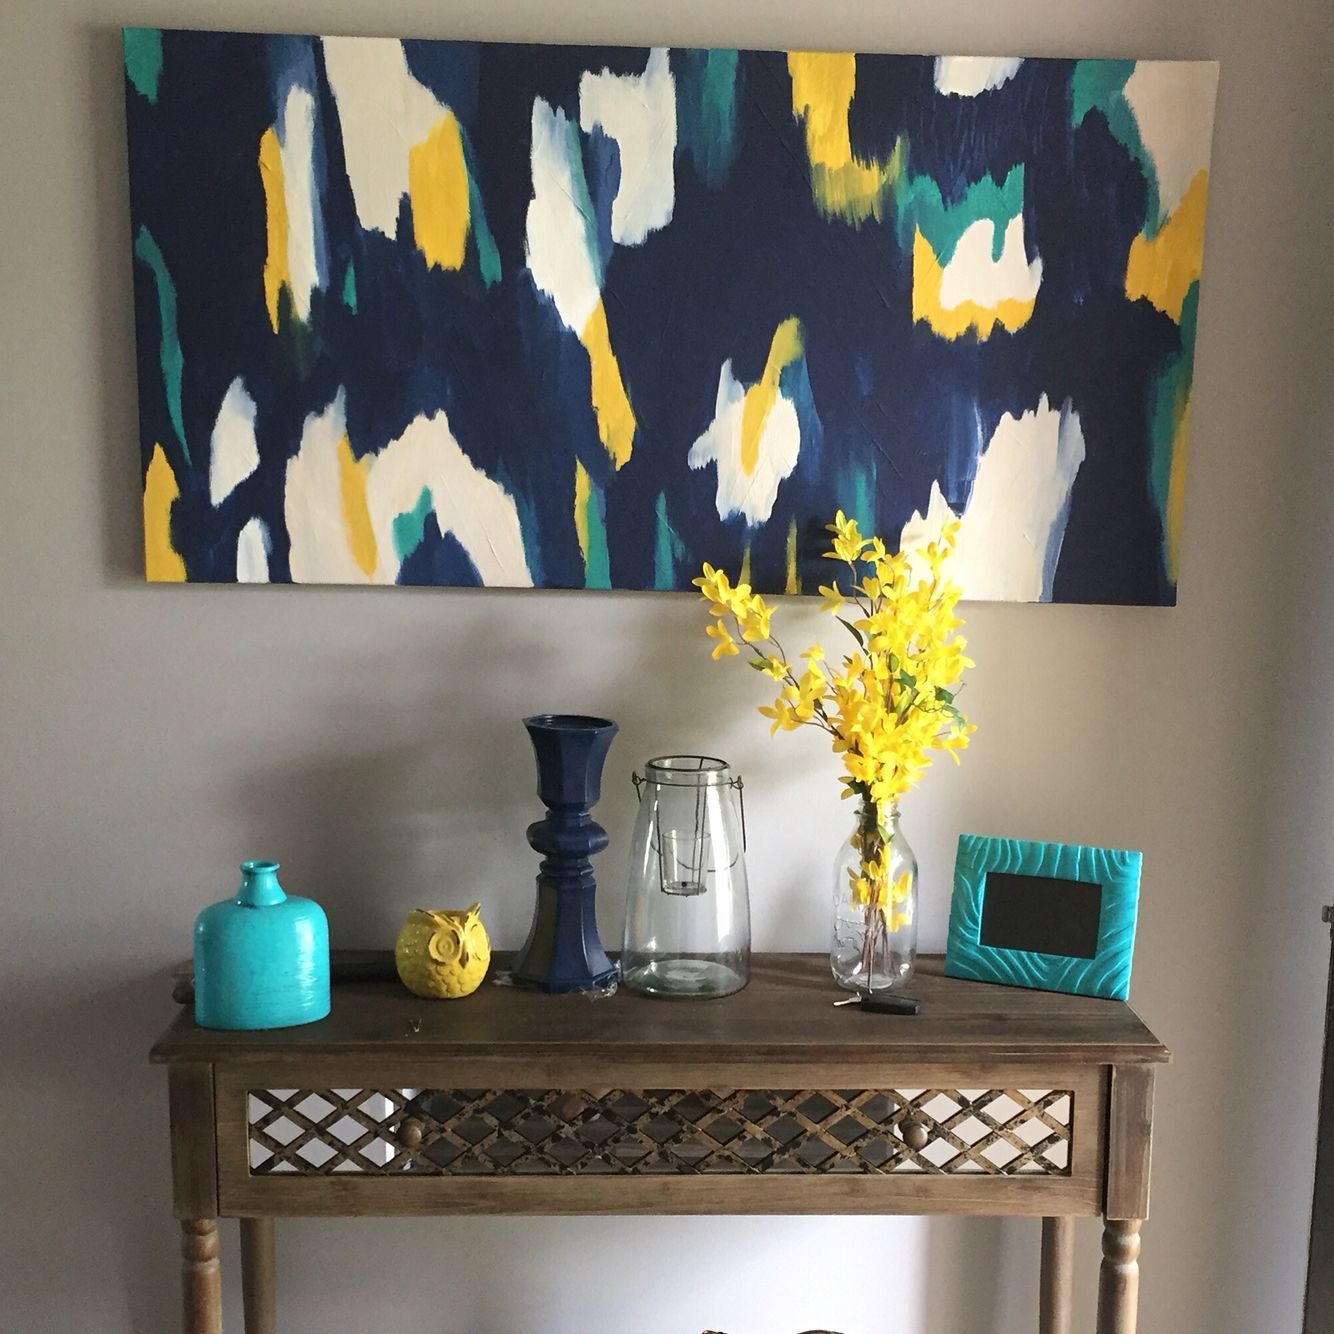 Turquoise And Marigold Best Color Combinations To Bring Charm To Your Home For 2018 Living Room Turquoise Yellow Living Room Turquoise Living Room Decor